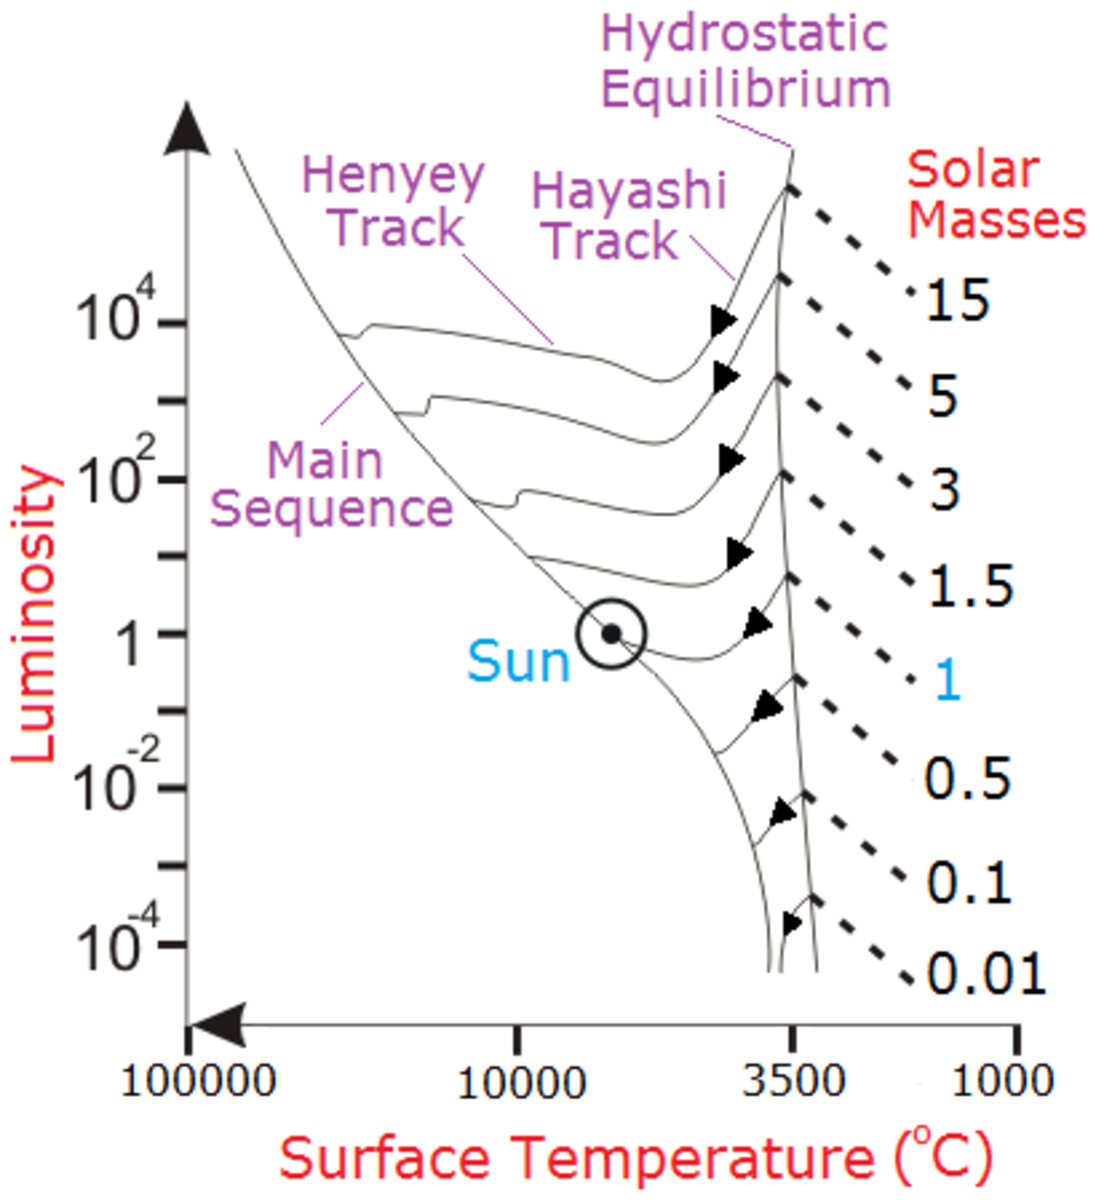 The early evolution of the Sun from protostar to main sequence star. The evolution of heavier and lighter stars are compared.